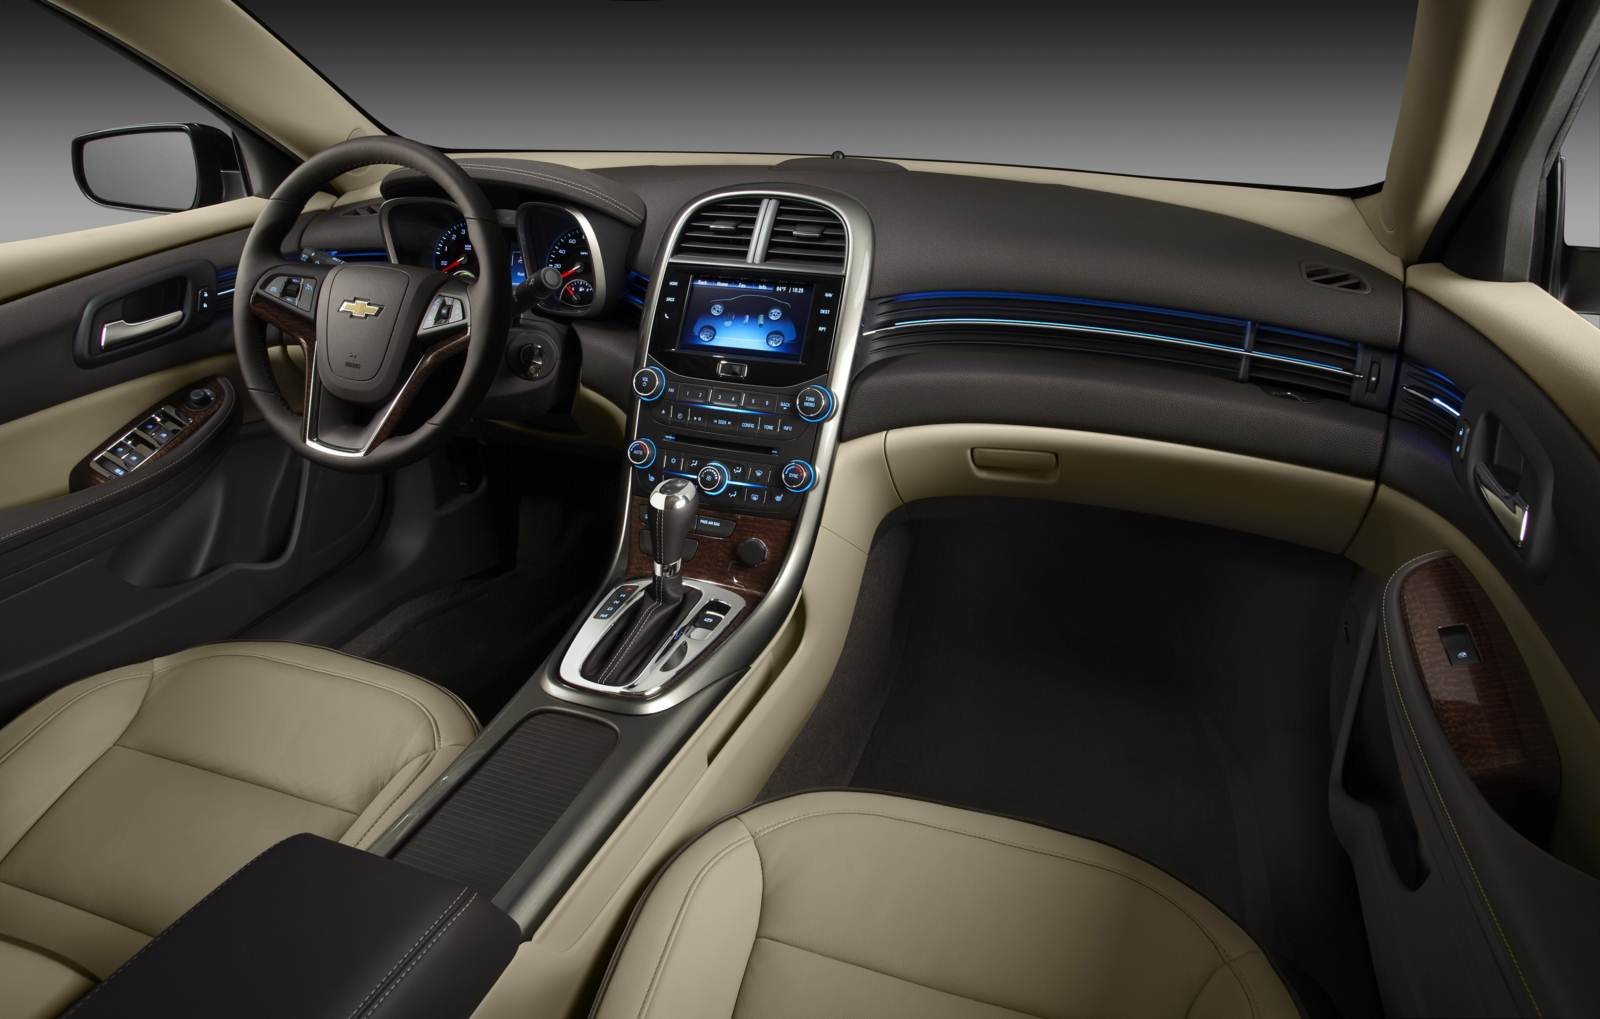 chevrolet malibu 2014 lan amento em junho com pre o de r. Black Bedroom Furniture Sets. Home Design Ideas